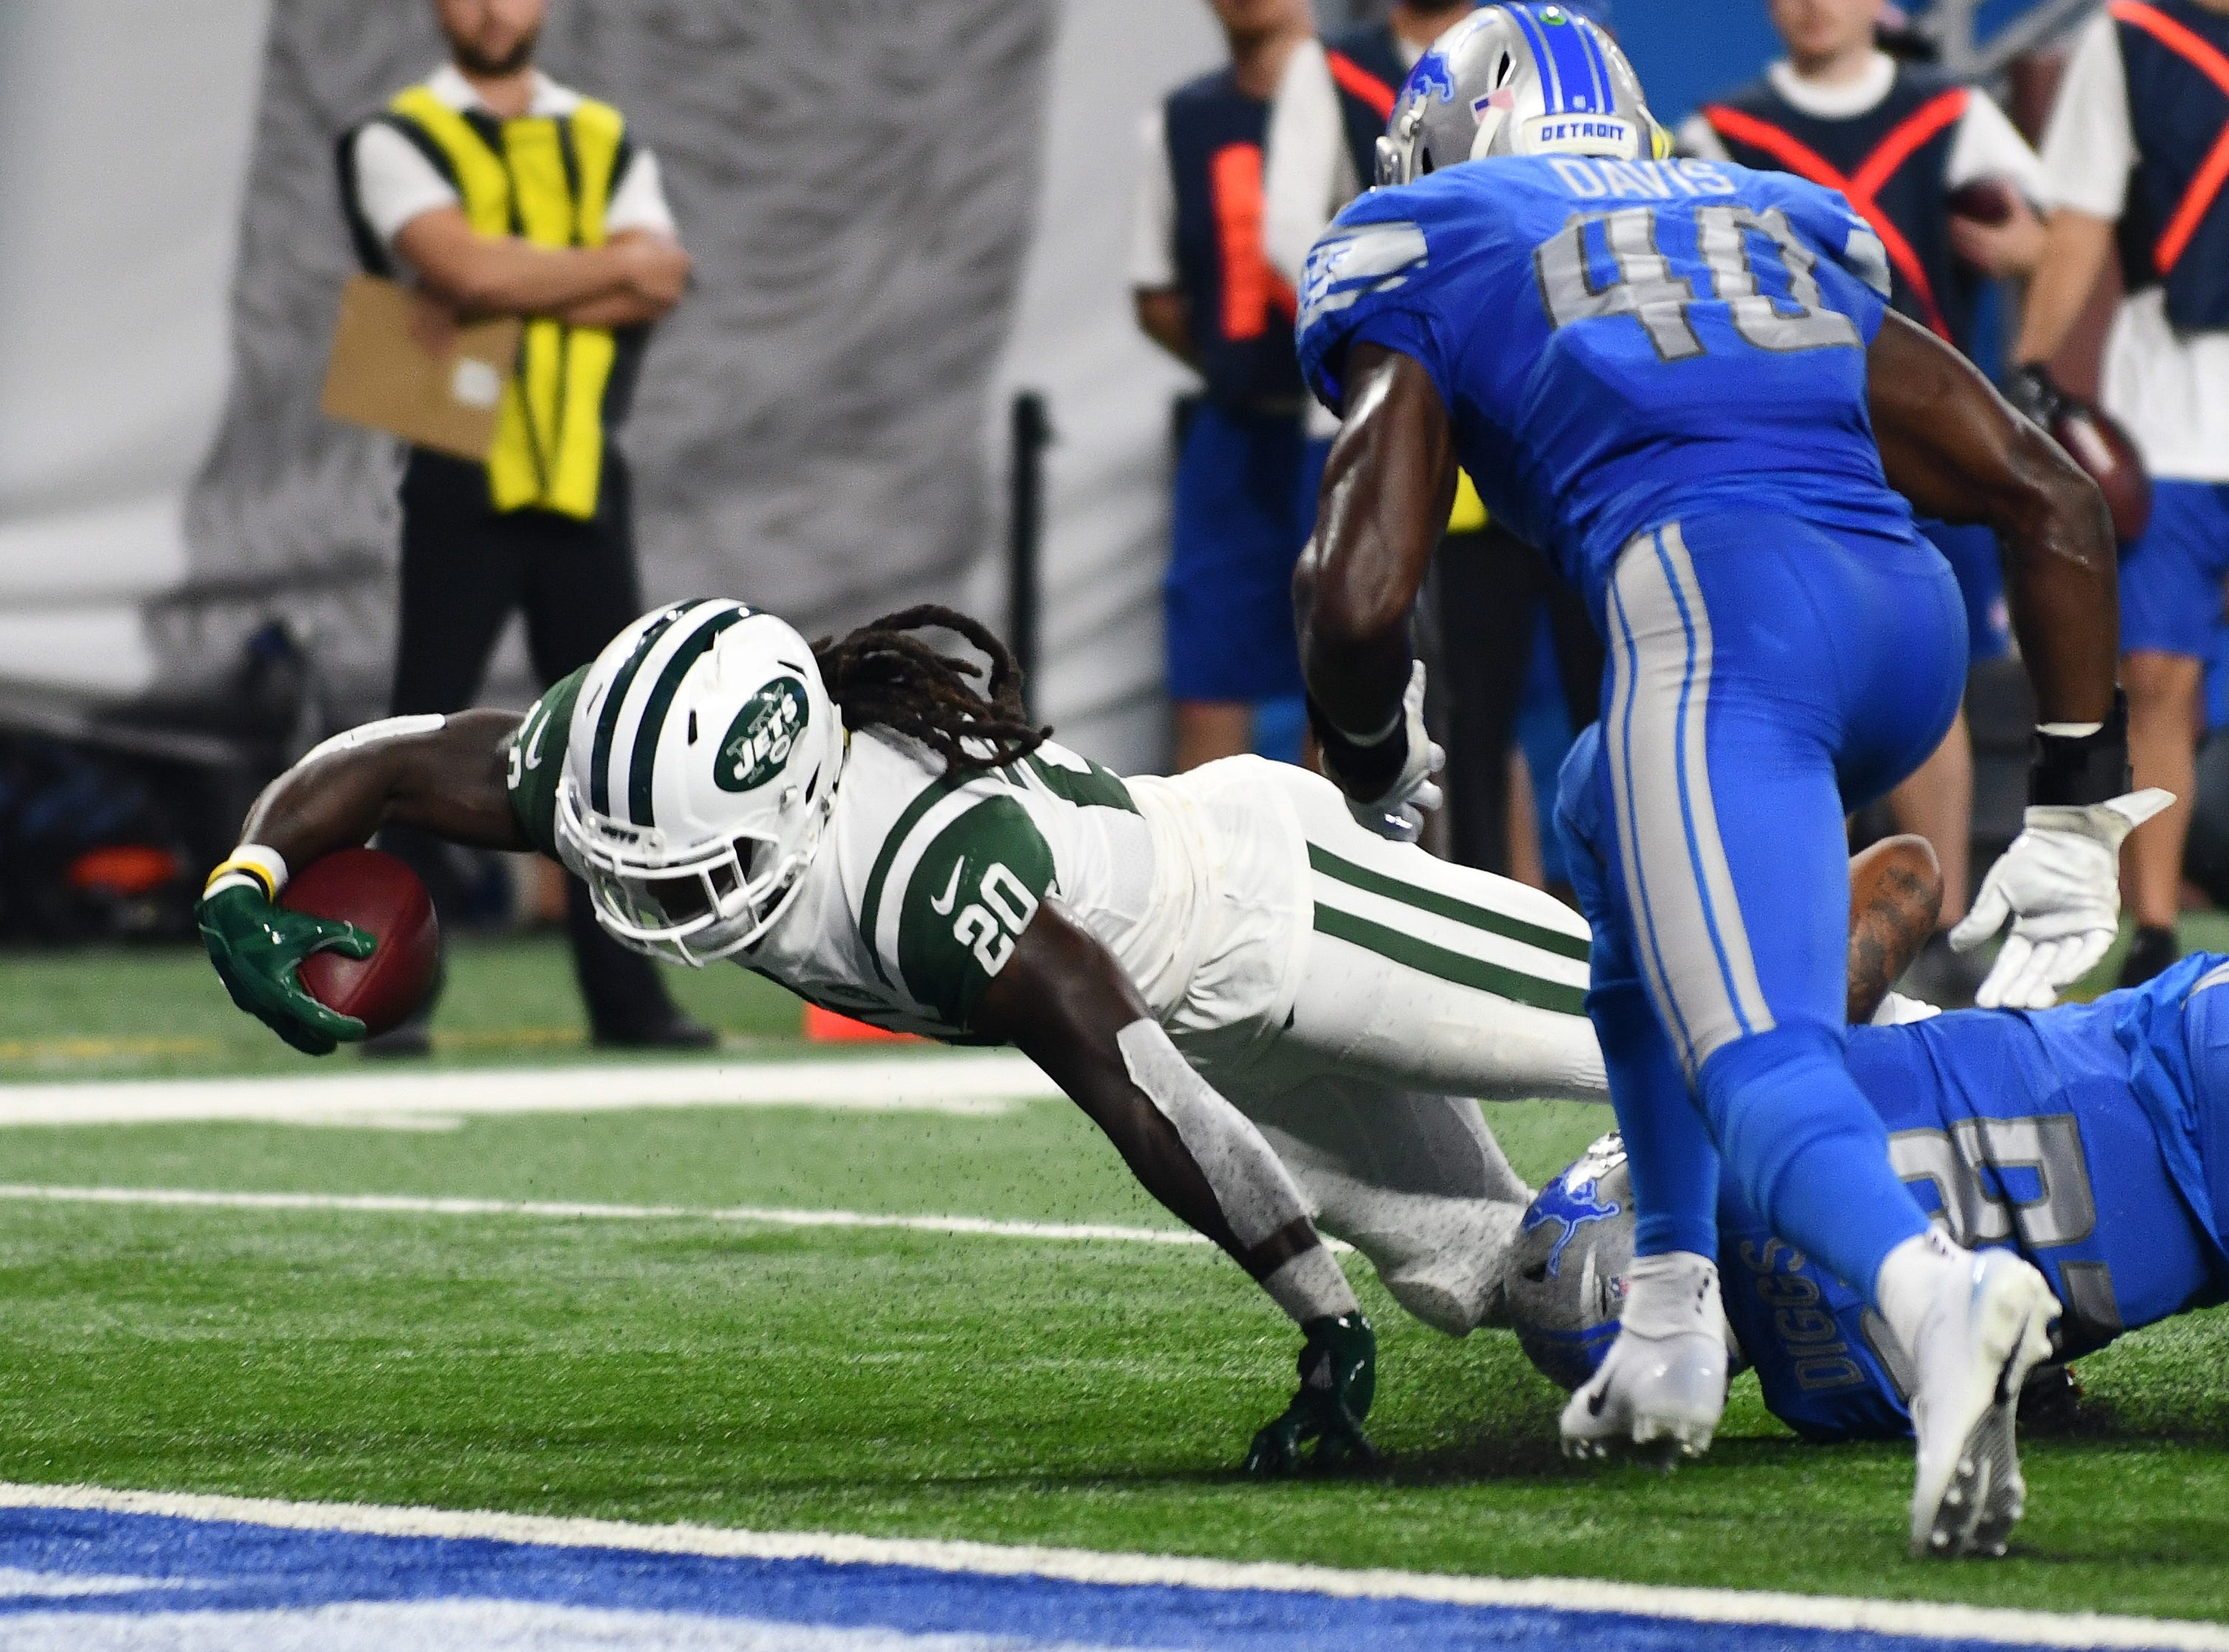 Jets' Isaiah Crowell reaches for the end zone and scores past Lions Quandre Diggs and Jarrad Davis in the first quarter.